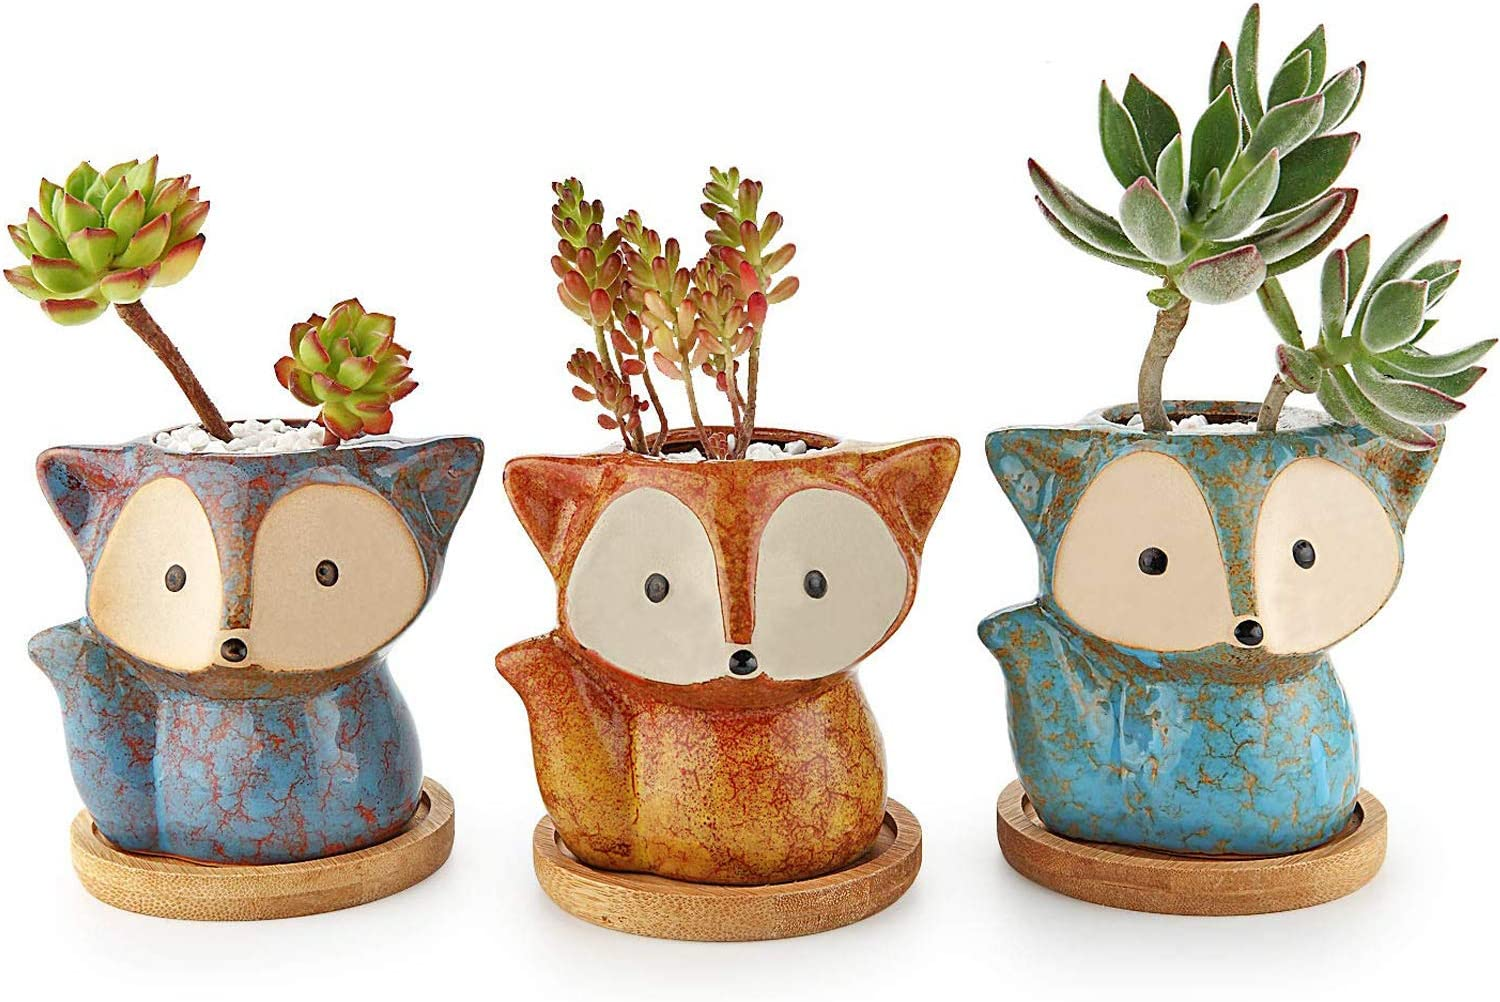 T4U Ceramic Succulent Planter Pot, Fox Shaped Cute Cactus Plant Pot with Bamboo Tray for Home Office Desk Decoration Birthday Wedding with Transmutation Glaze, Set of 3(Multi Set)